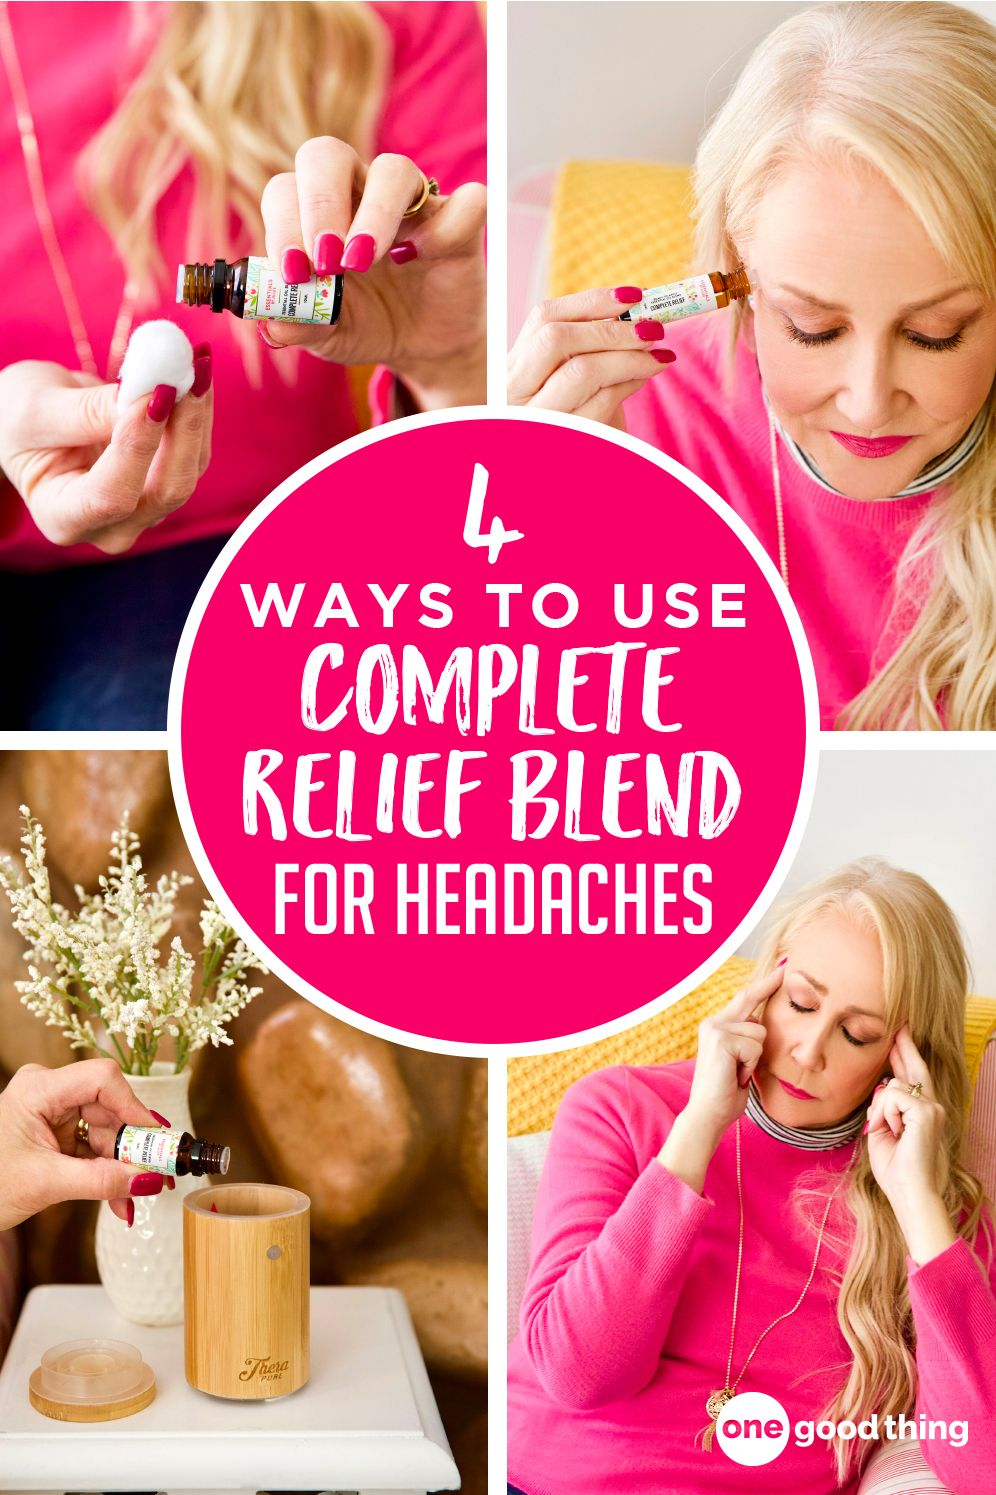 4 ways to use complete relief blend for headaches health